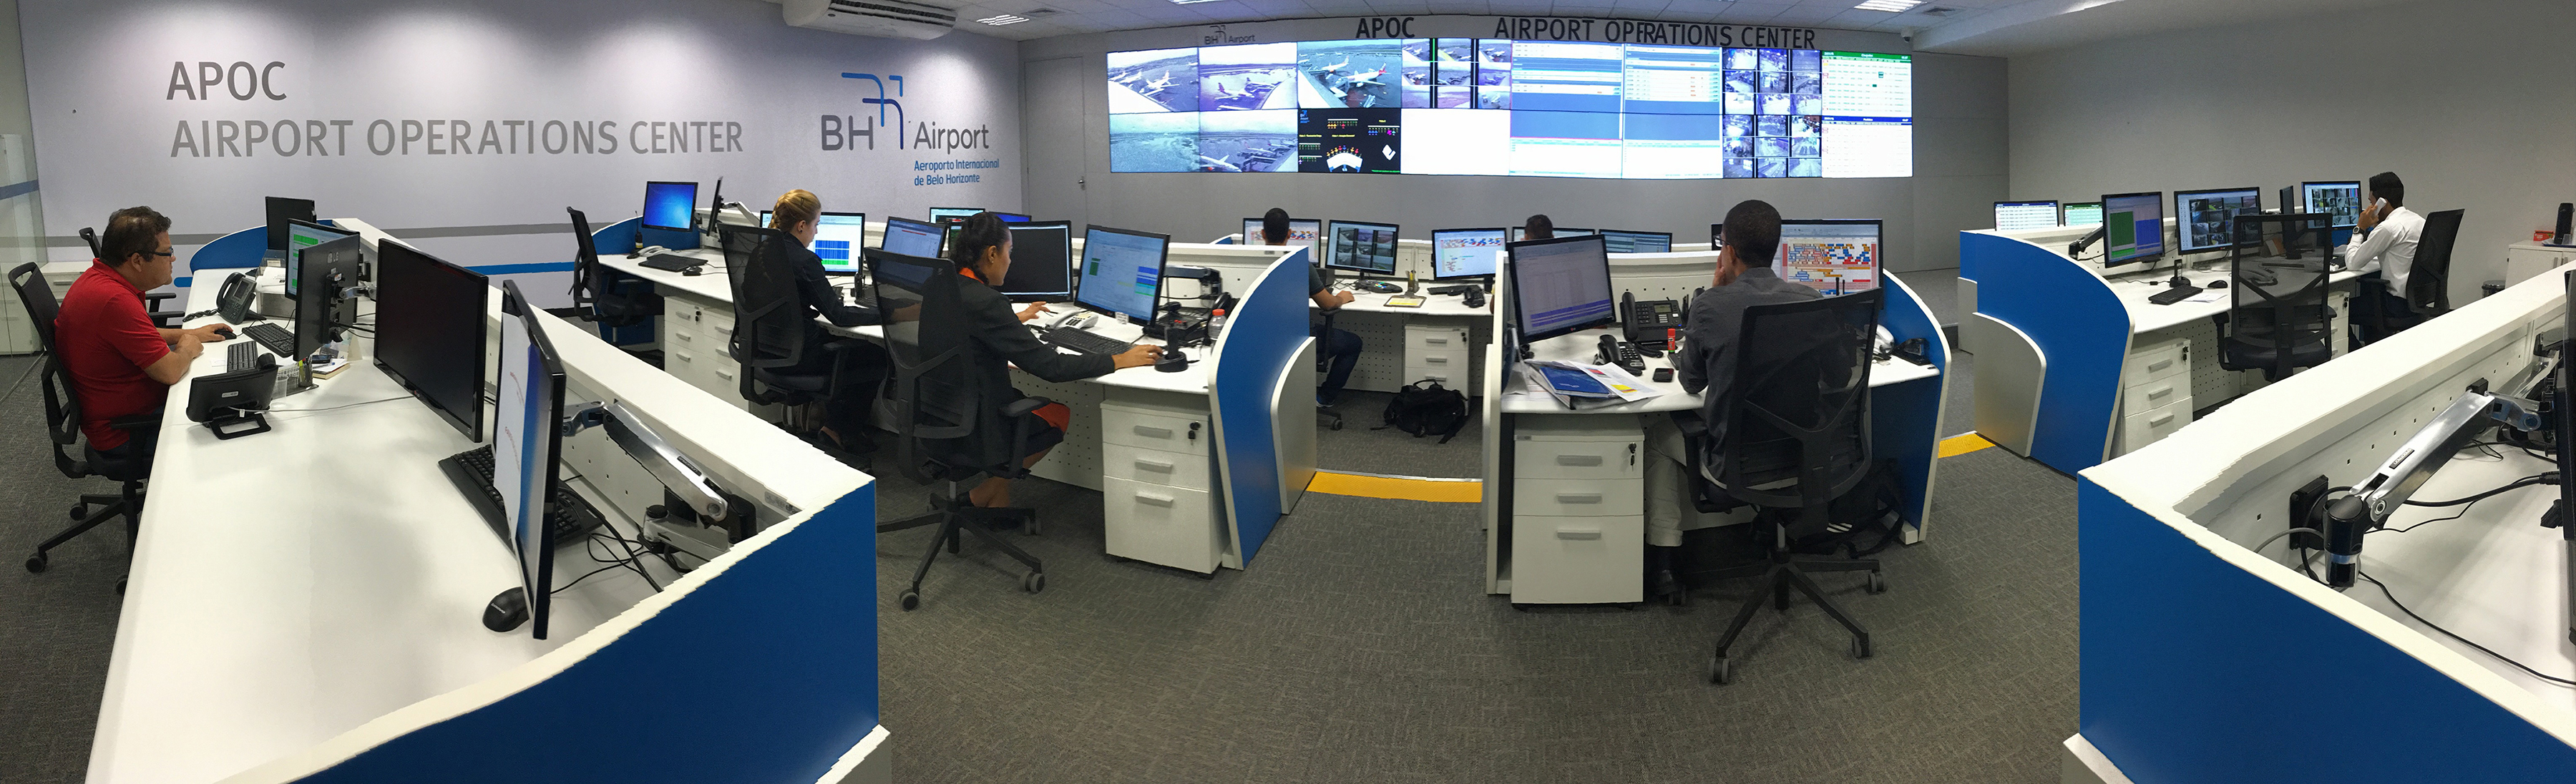 airport systems The world's busiest city airport systems by passenger traffic are measured by total number of passengers from all airports within a city or metropolitan area combined london, with six commercial airports in its metropolitan area, is the busiest city airport system in the world, although hartsfield–jackson atlanta international airport is the world's busiest individual airport.